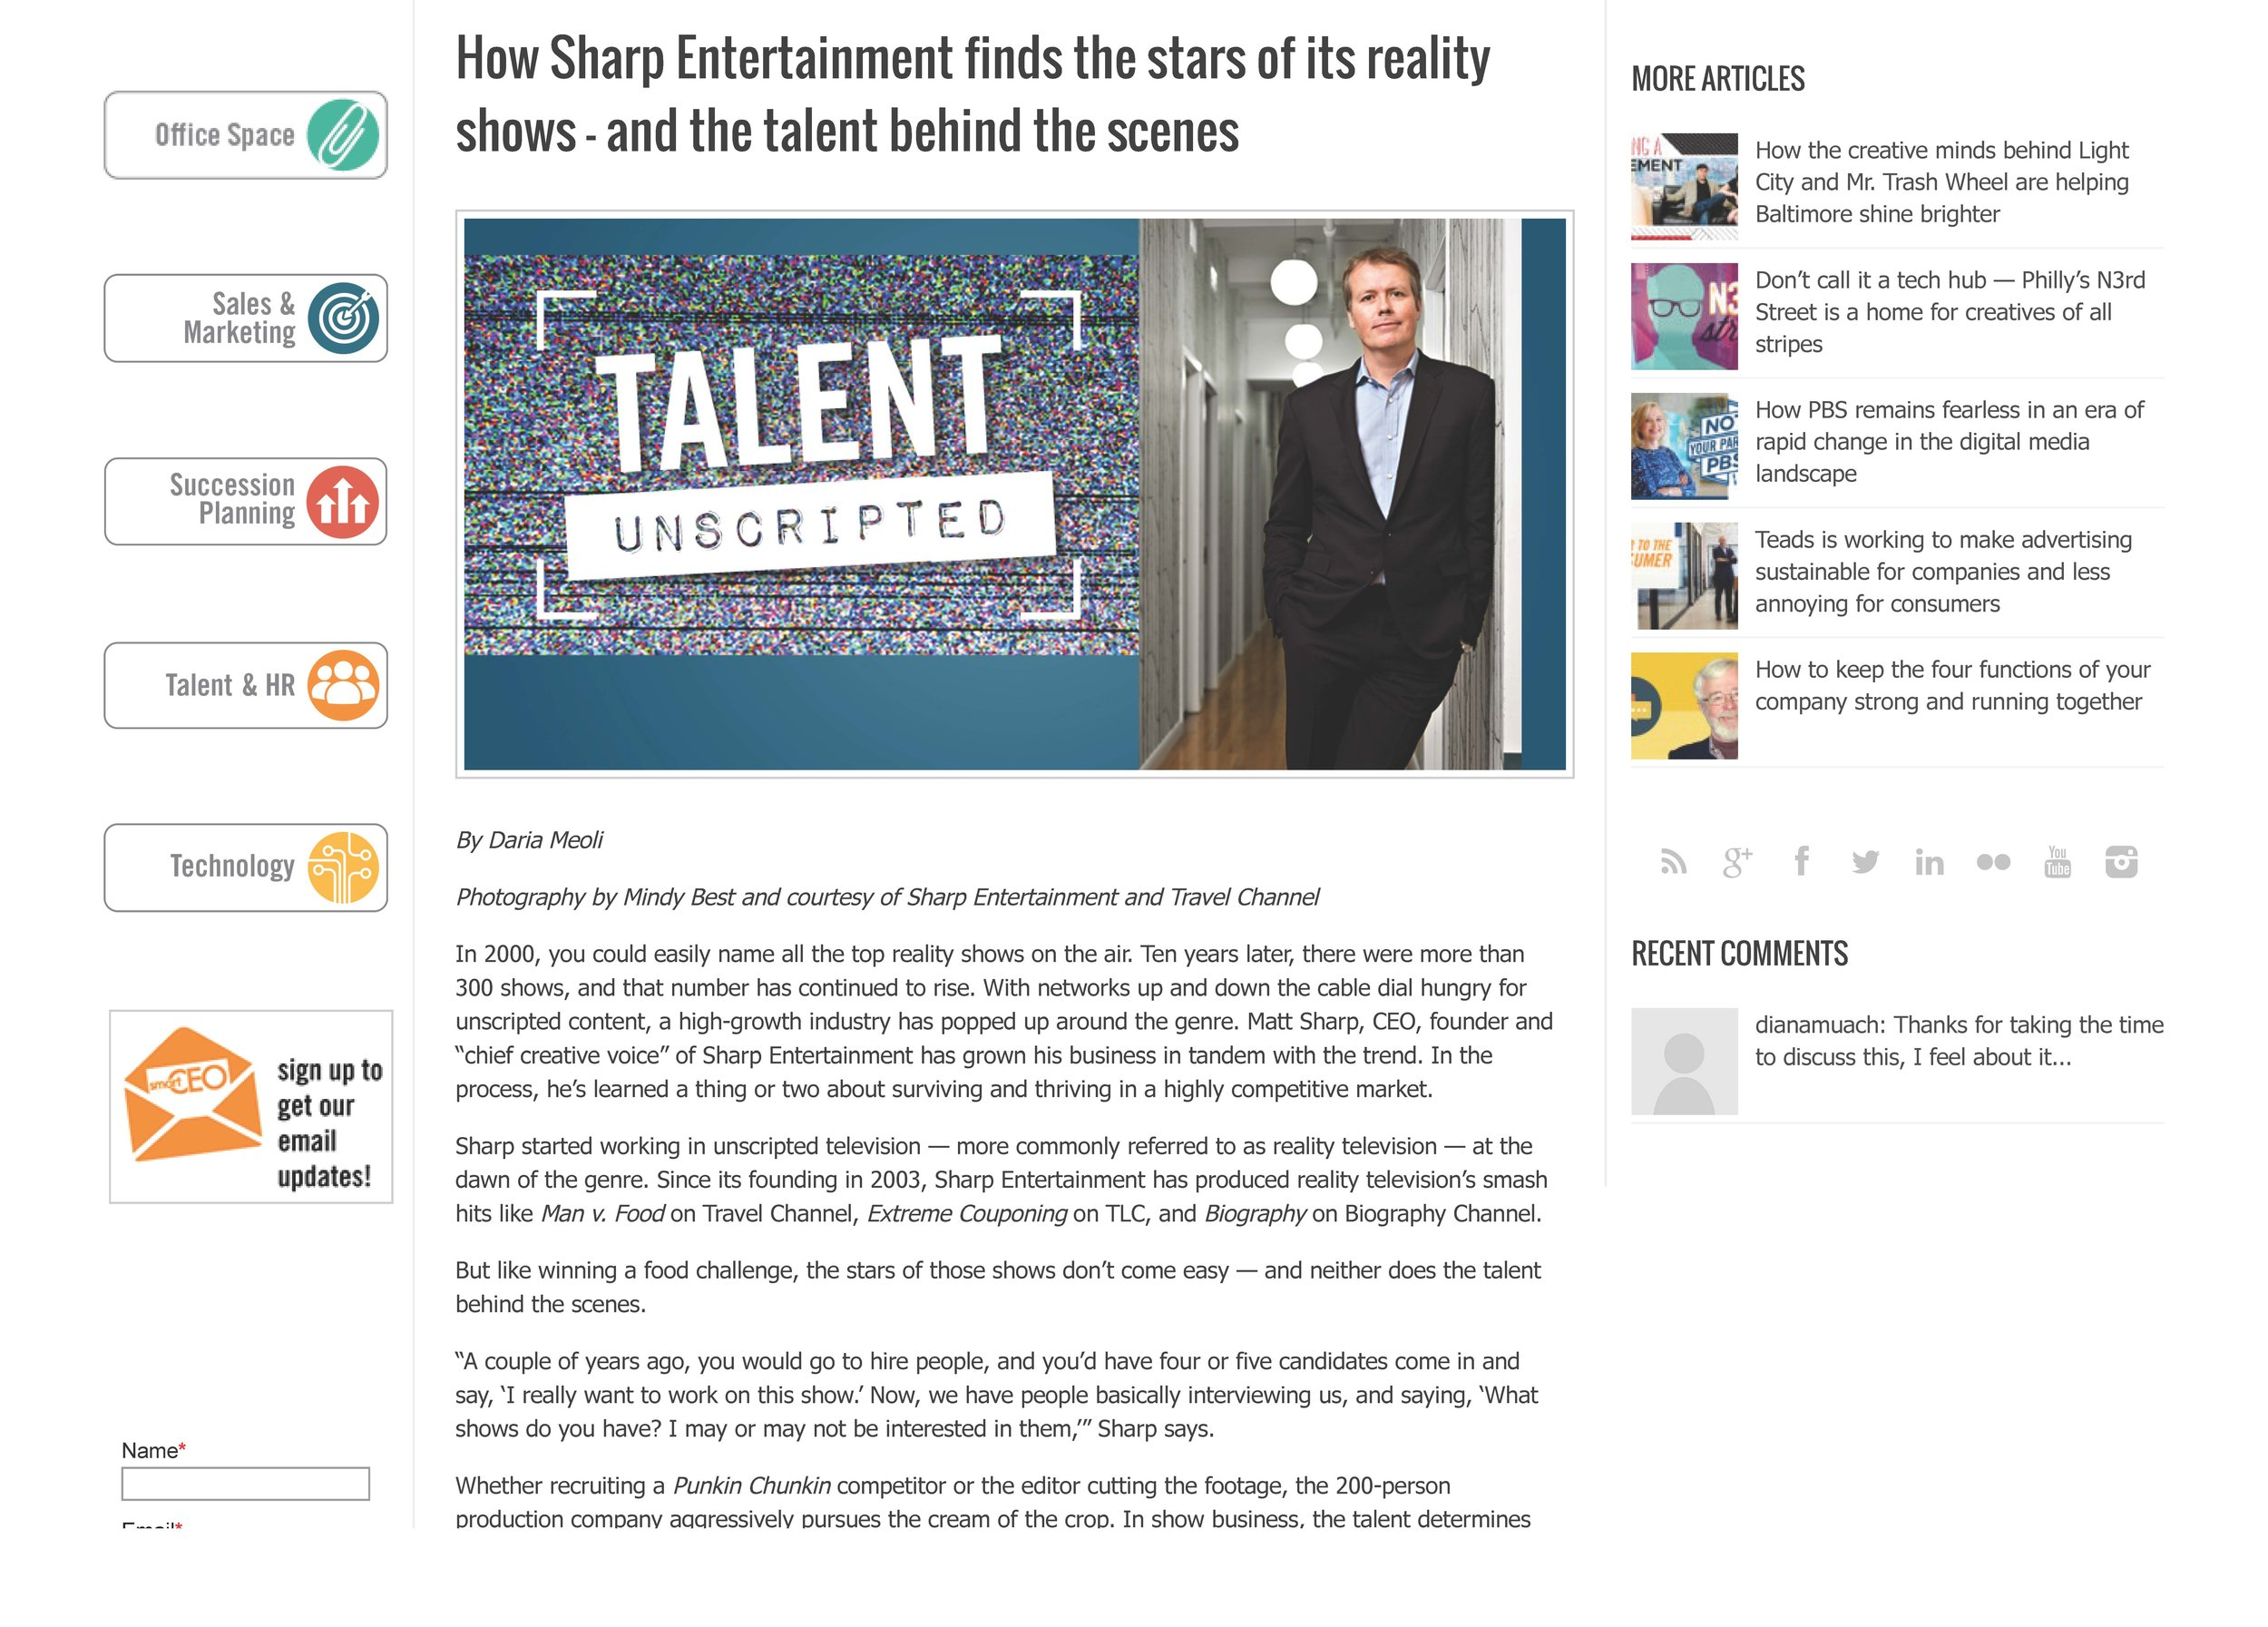 How Sharp Entertainment finds the stars of its reality shows copy_Page_1.jpg